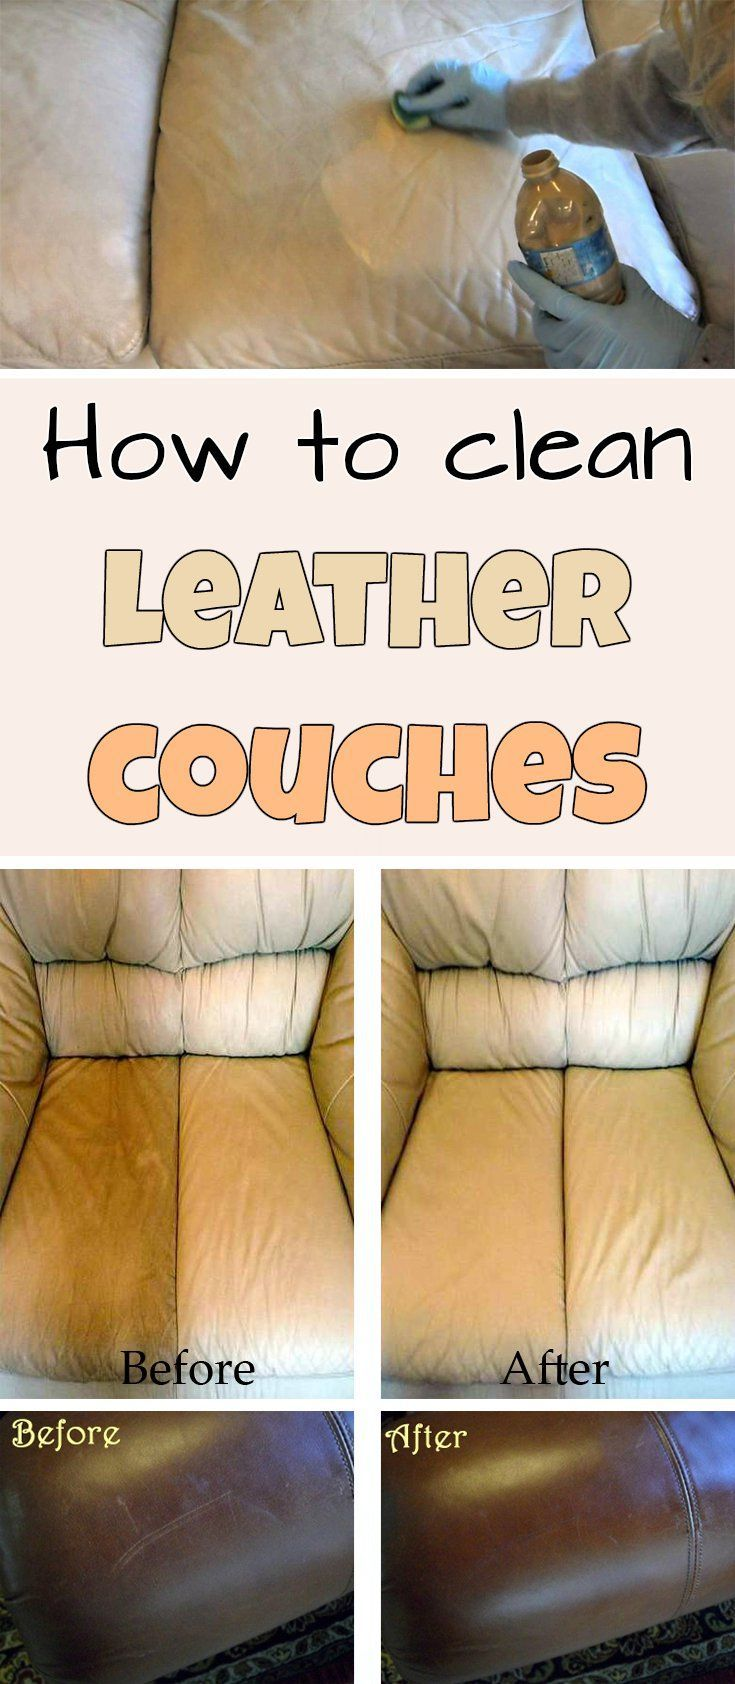 How To Clean Leather Couches